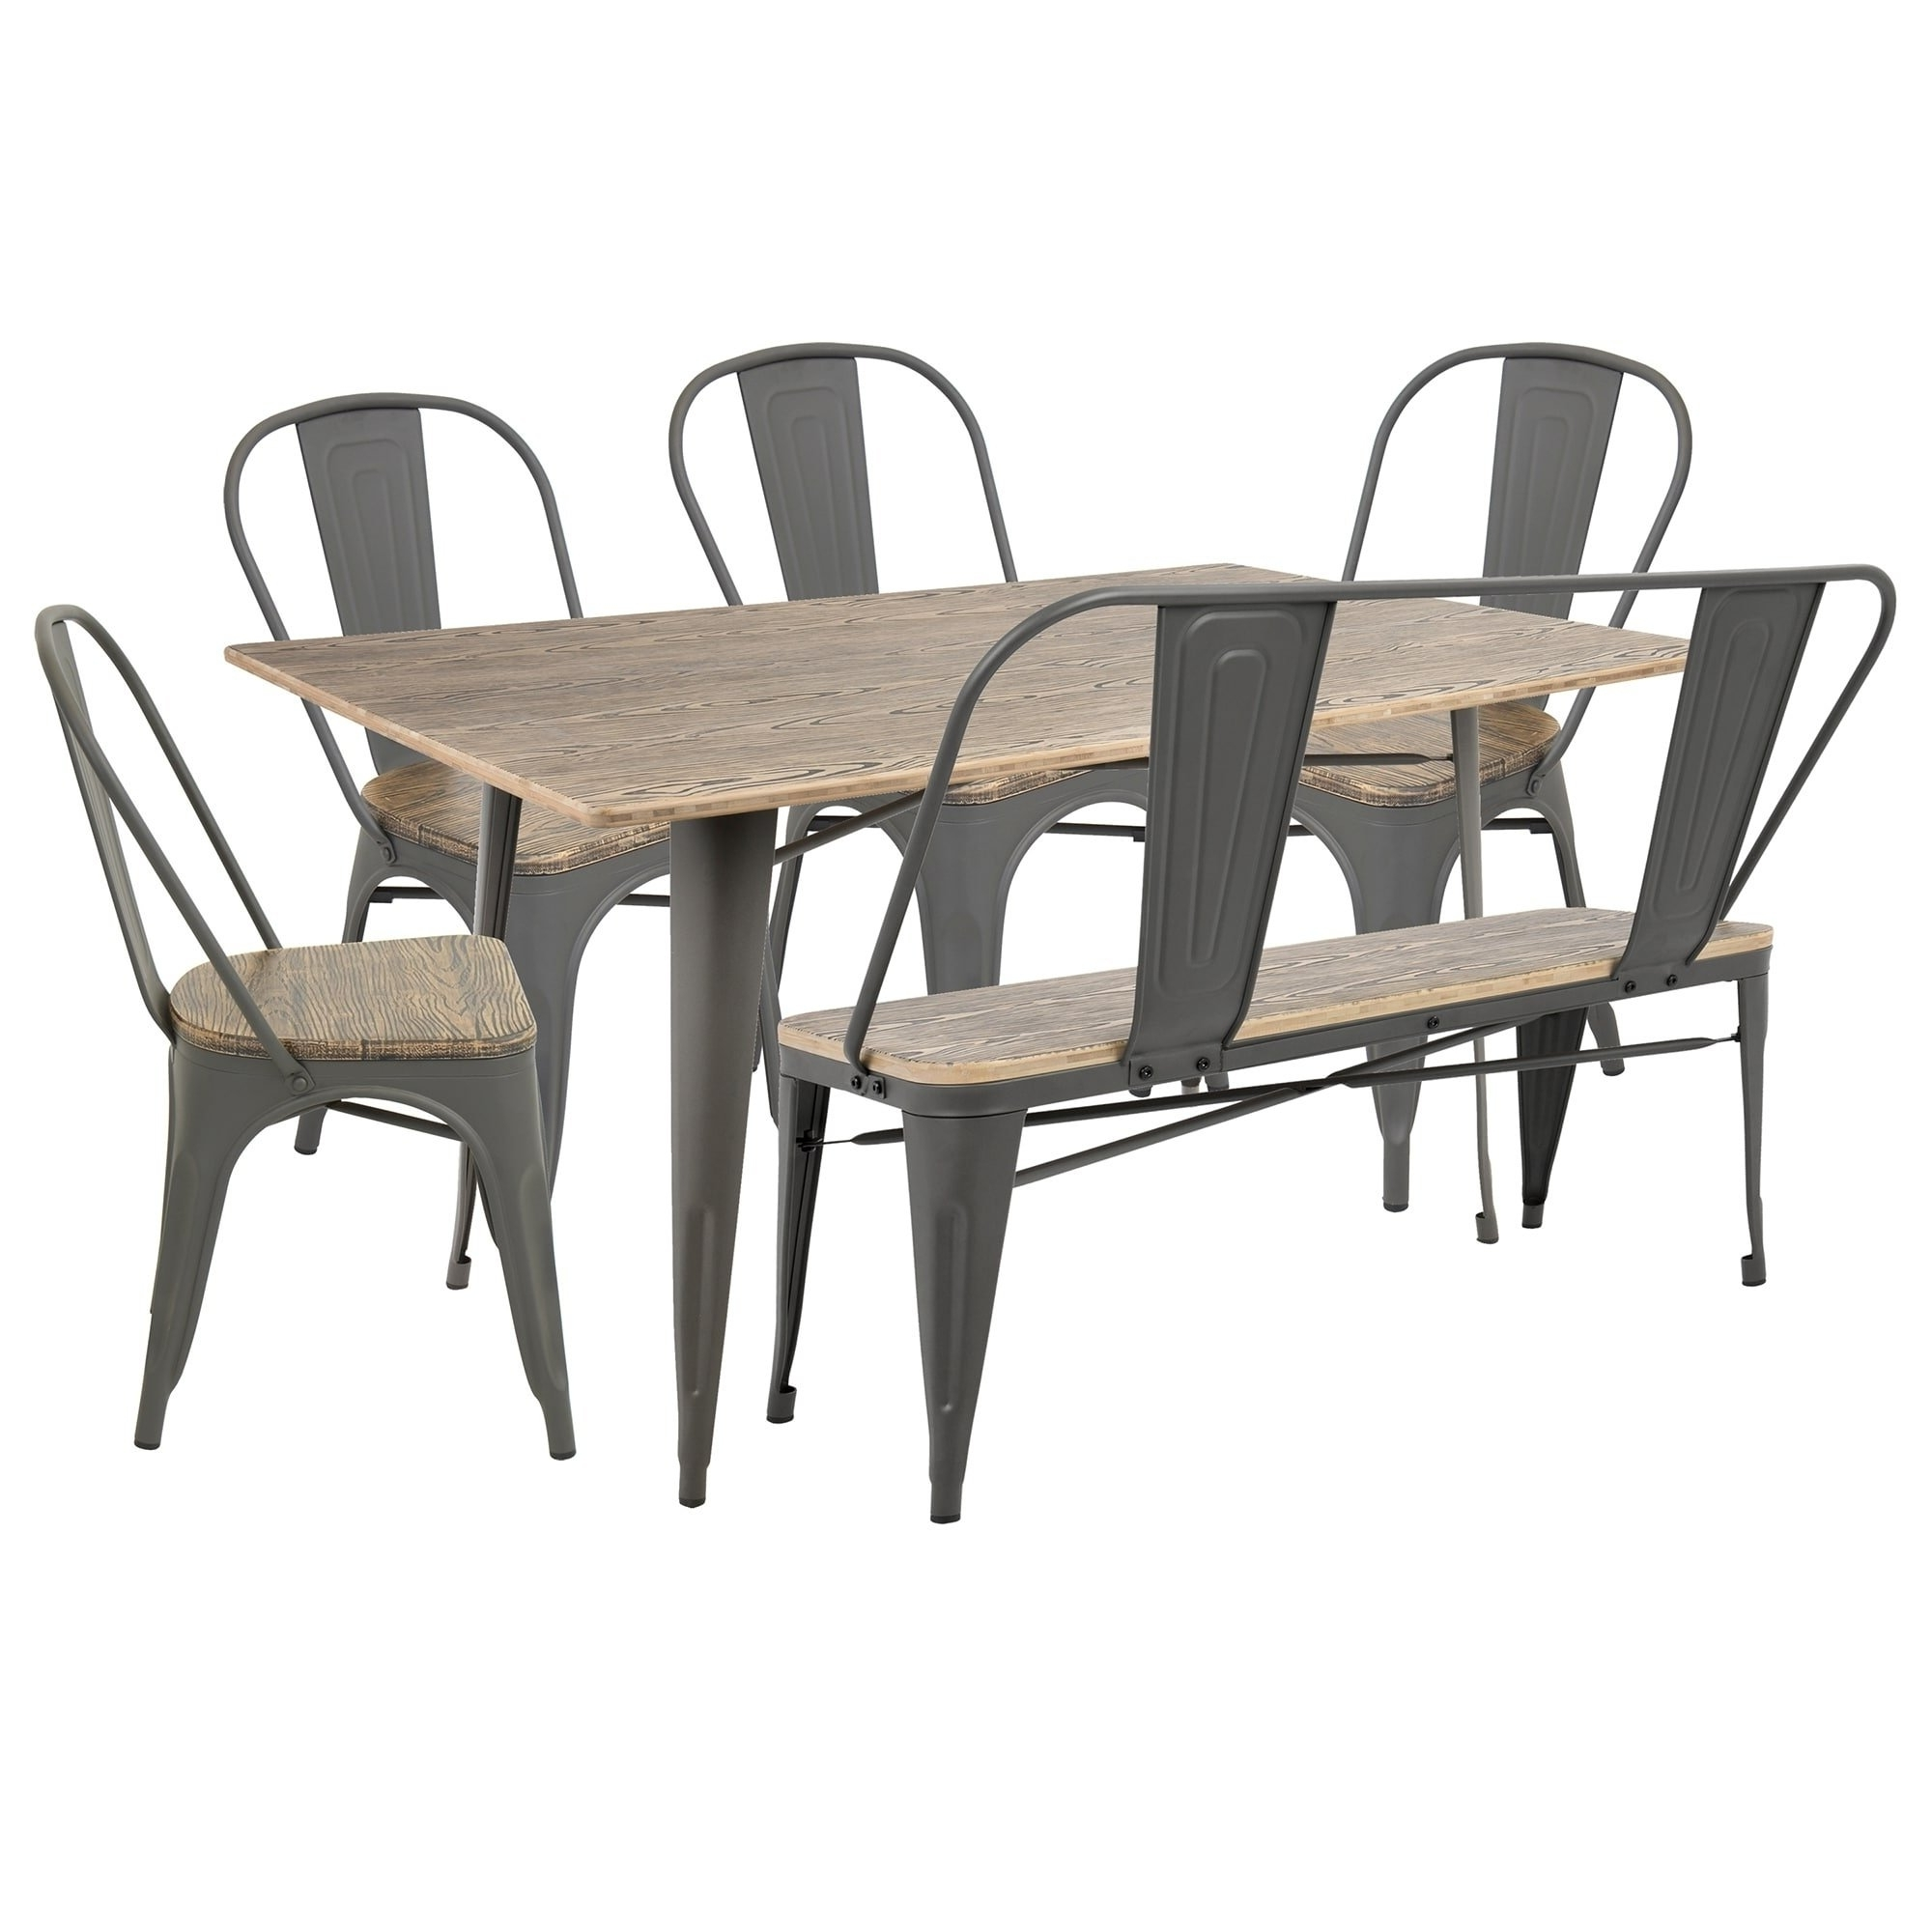 Most Current Craftsman 9 Piece Extension Dining Sets With Uph Side Chairs In Brown Kitchen & Dining Room Sets For Less (Gallery 24 of 25)